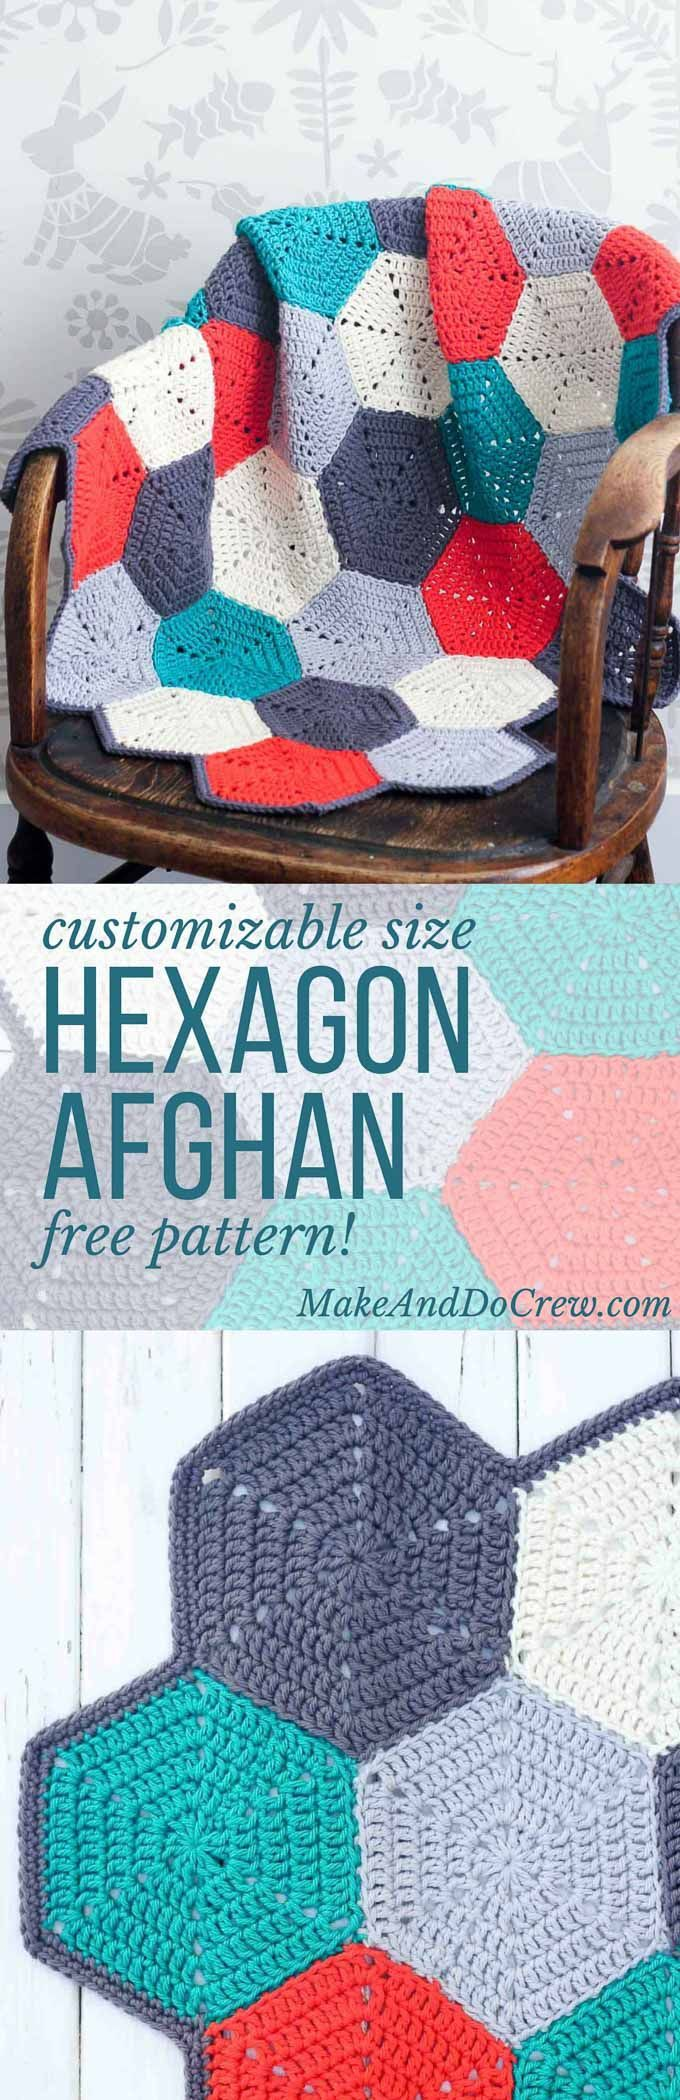 This free crochet afghan pattern is customizable, so you can use it to make a baby blanket, lap blanket or even a bedspread. Makes a great modern, gender-neutral baby shower gift idea or an afghan for the couch.